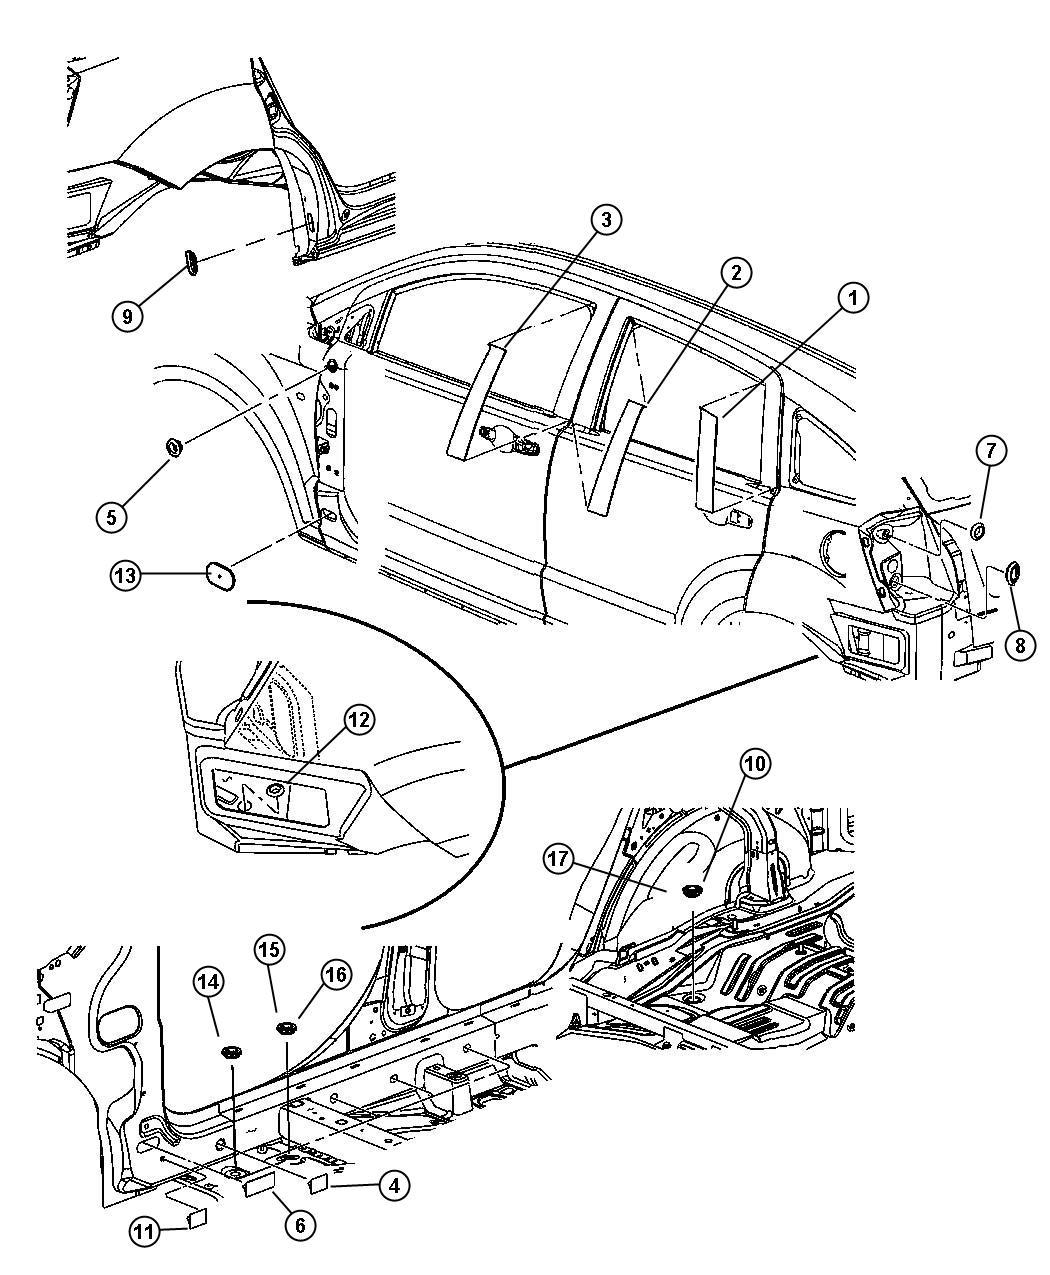 parts diagram 2007 dodge caliber sxt